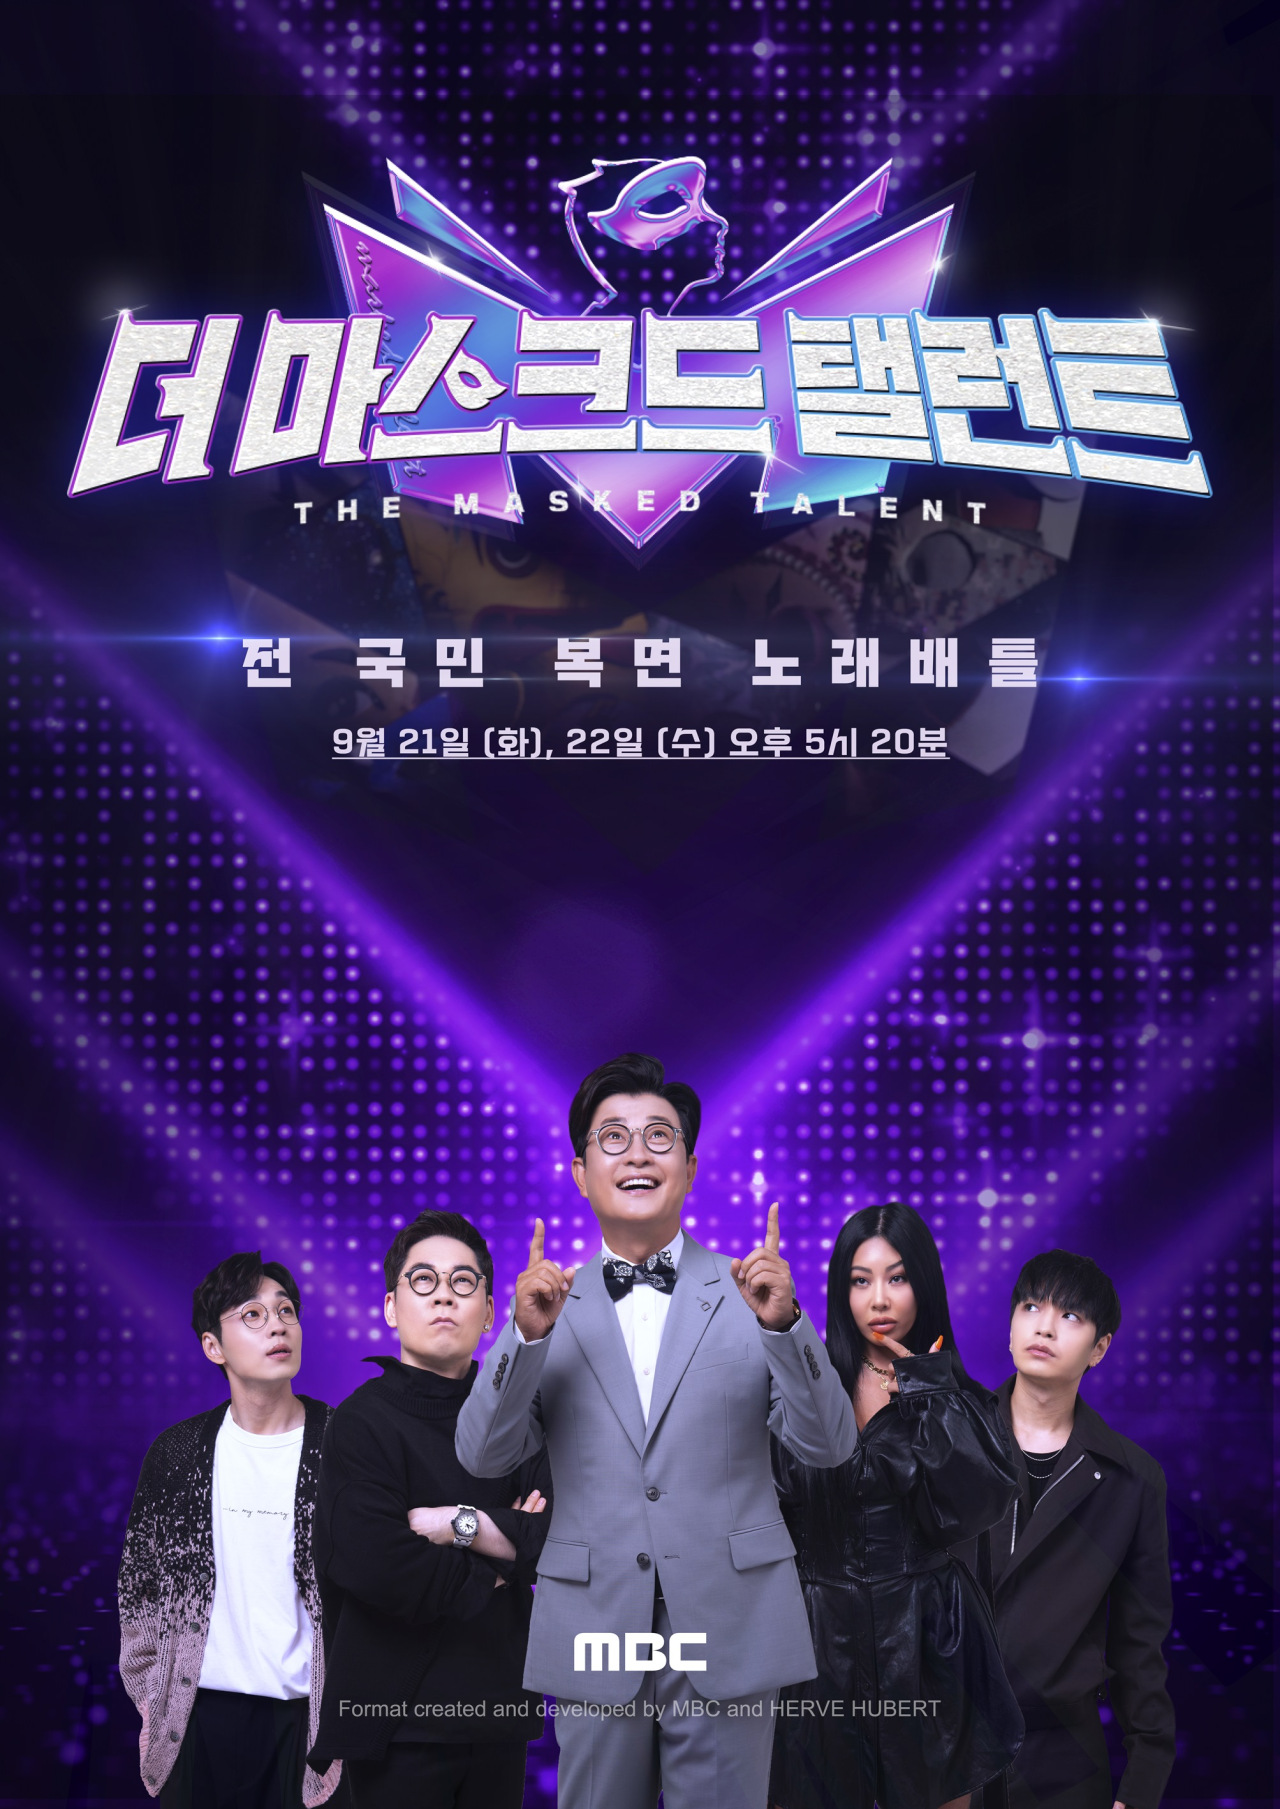 """A poster for """"The Masked Talent"""" (MBC)"""